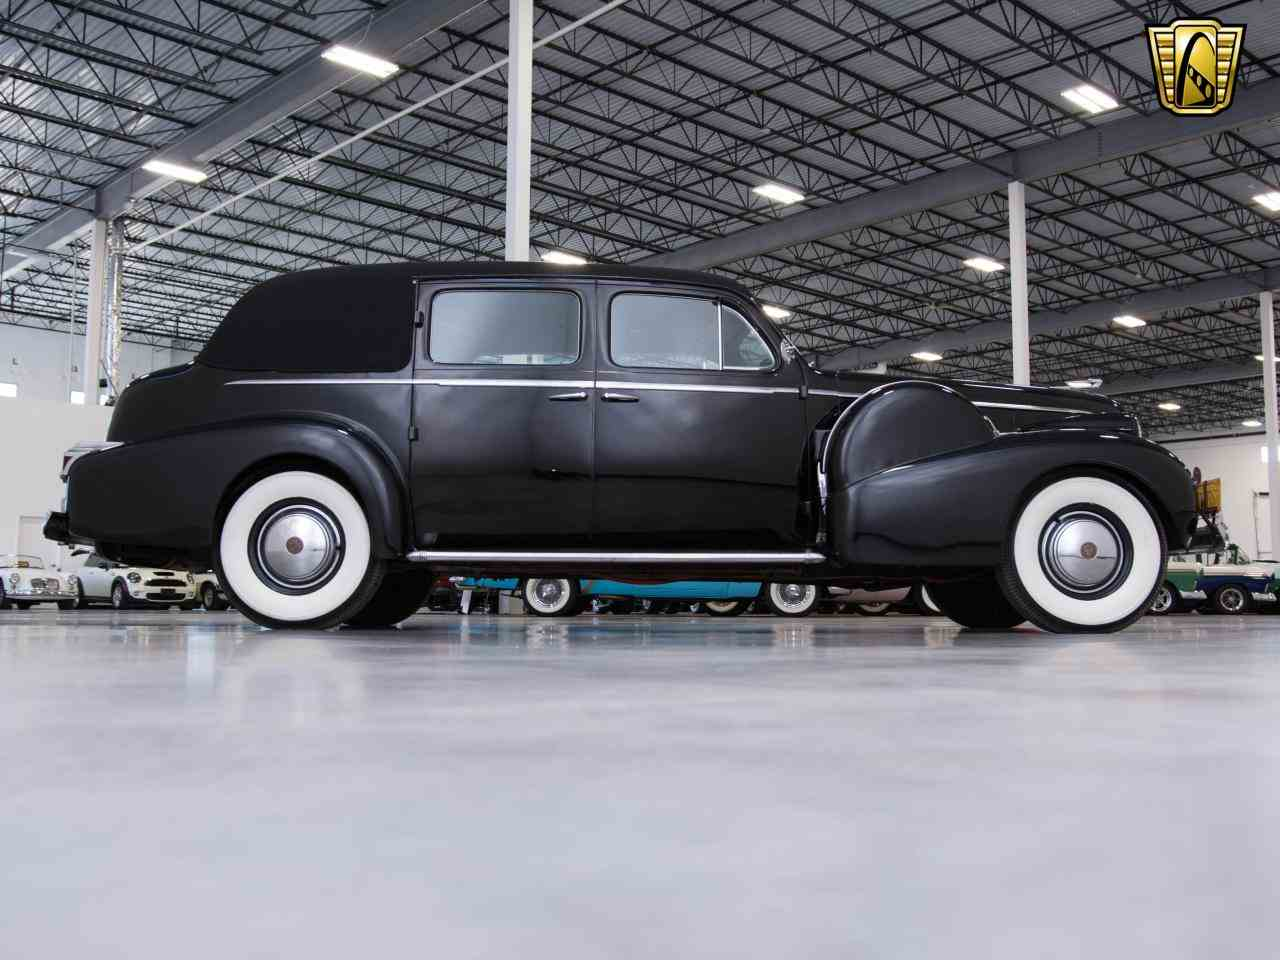 Large Picture of '39 Cadillac 7 Passenger Touring W/ Trunk located in Wisconsin - $58,000.00 Offered by Gateway Classic Cars - Milwaukee - KHP0